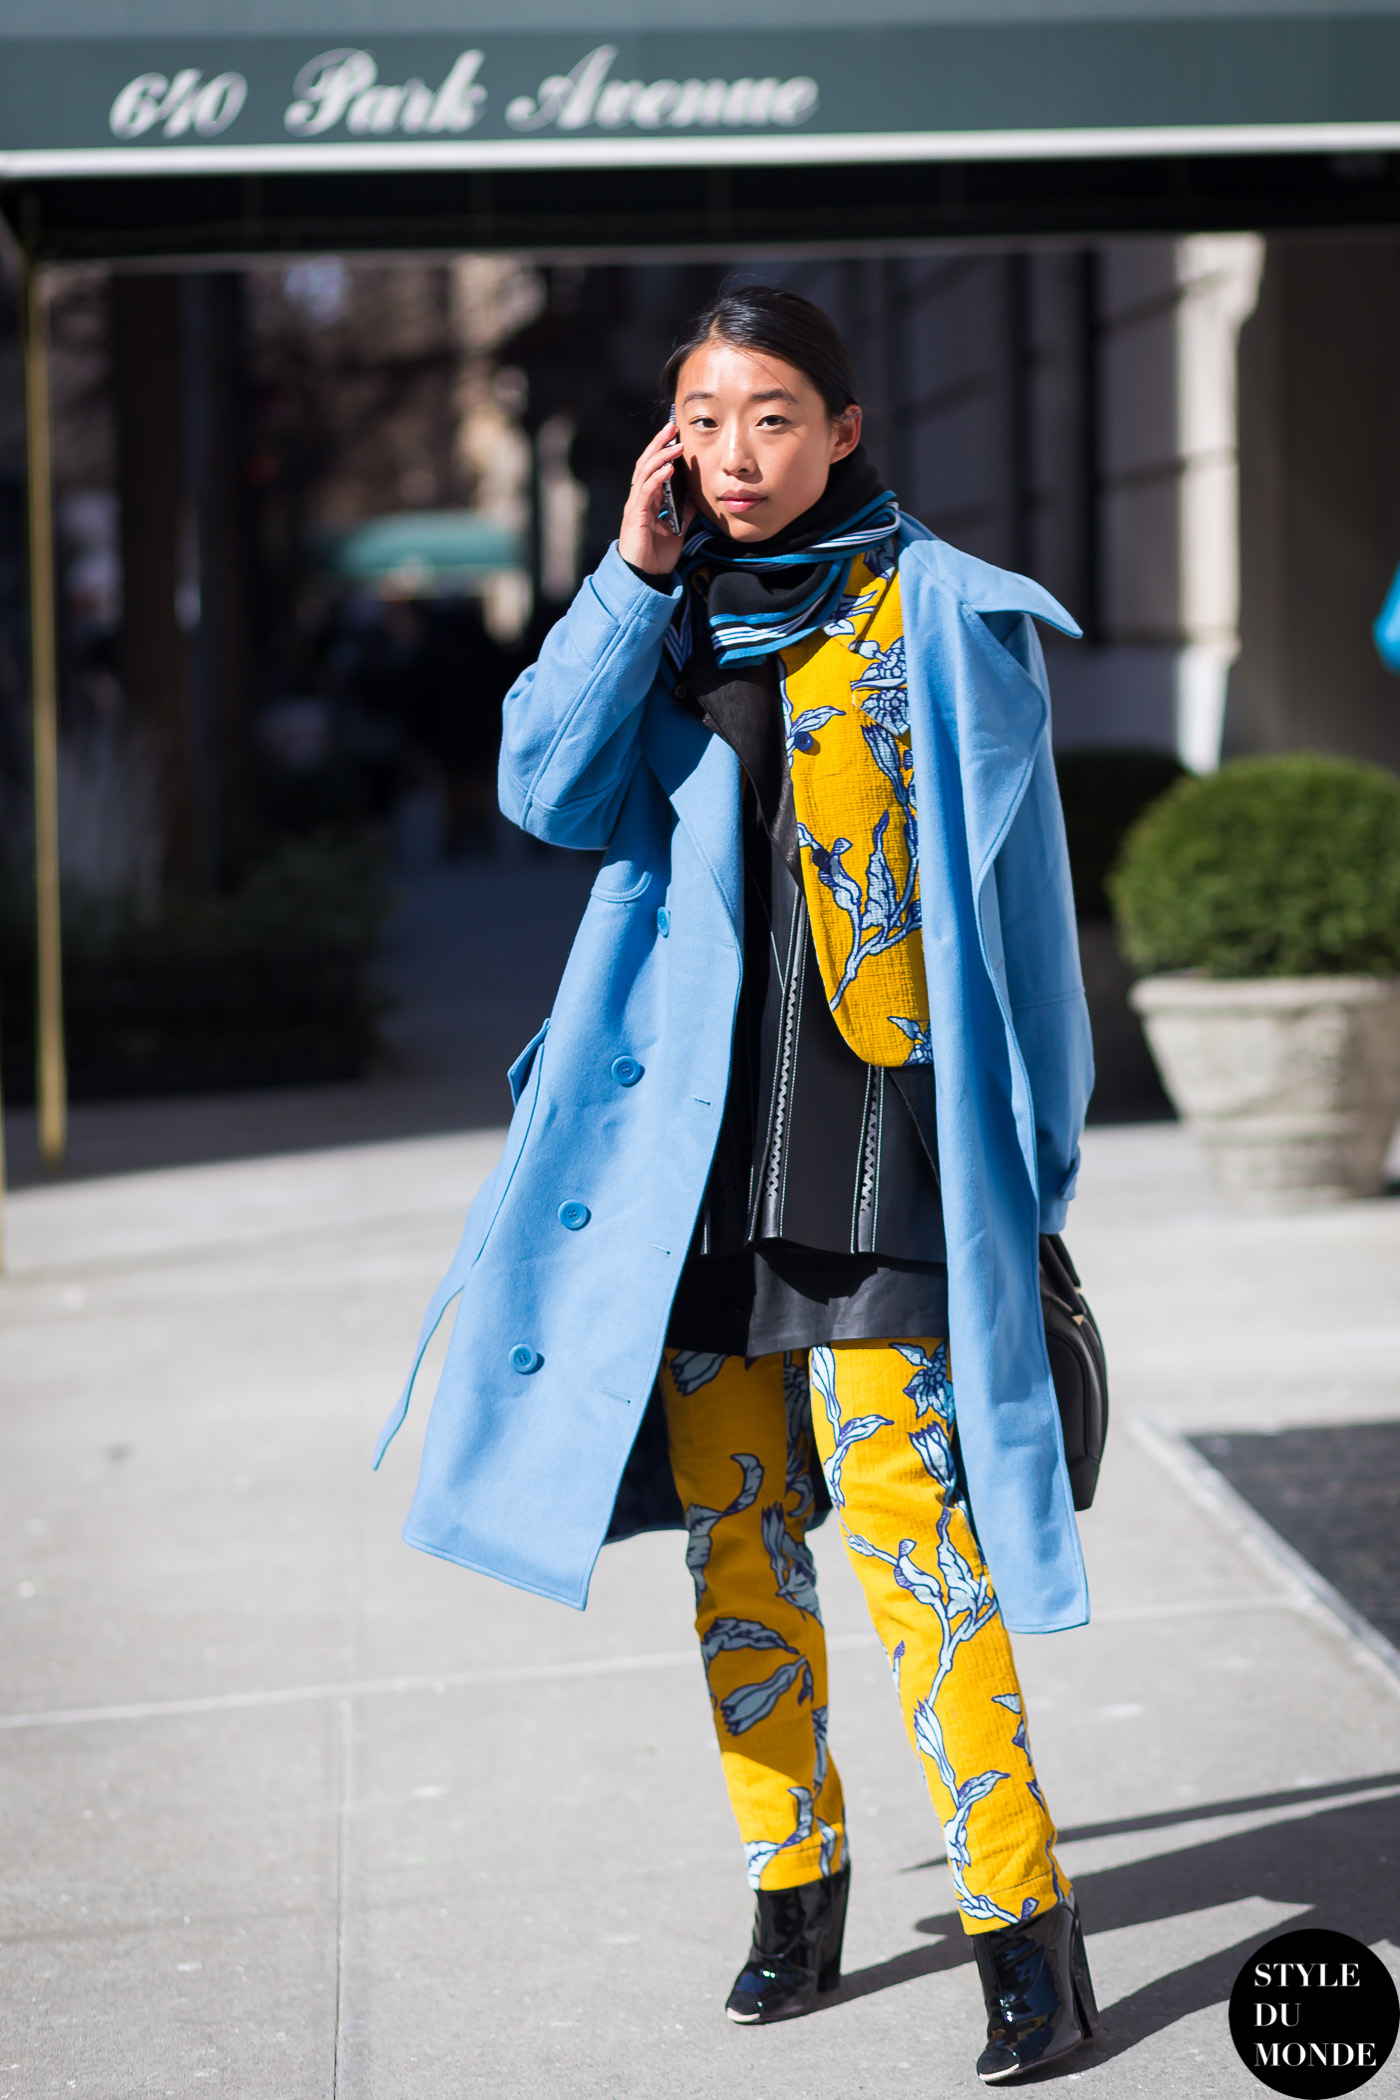 Margaret Zhang Street Style Street Fashion Streetsnaps by STYLEDUMONDE Street Style Fashion Blog